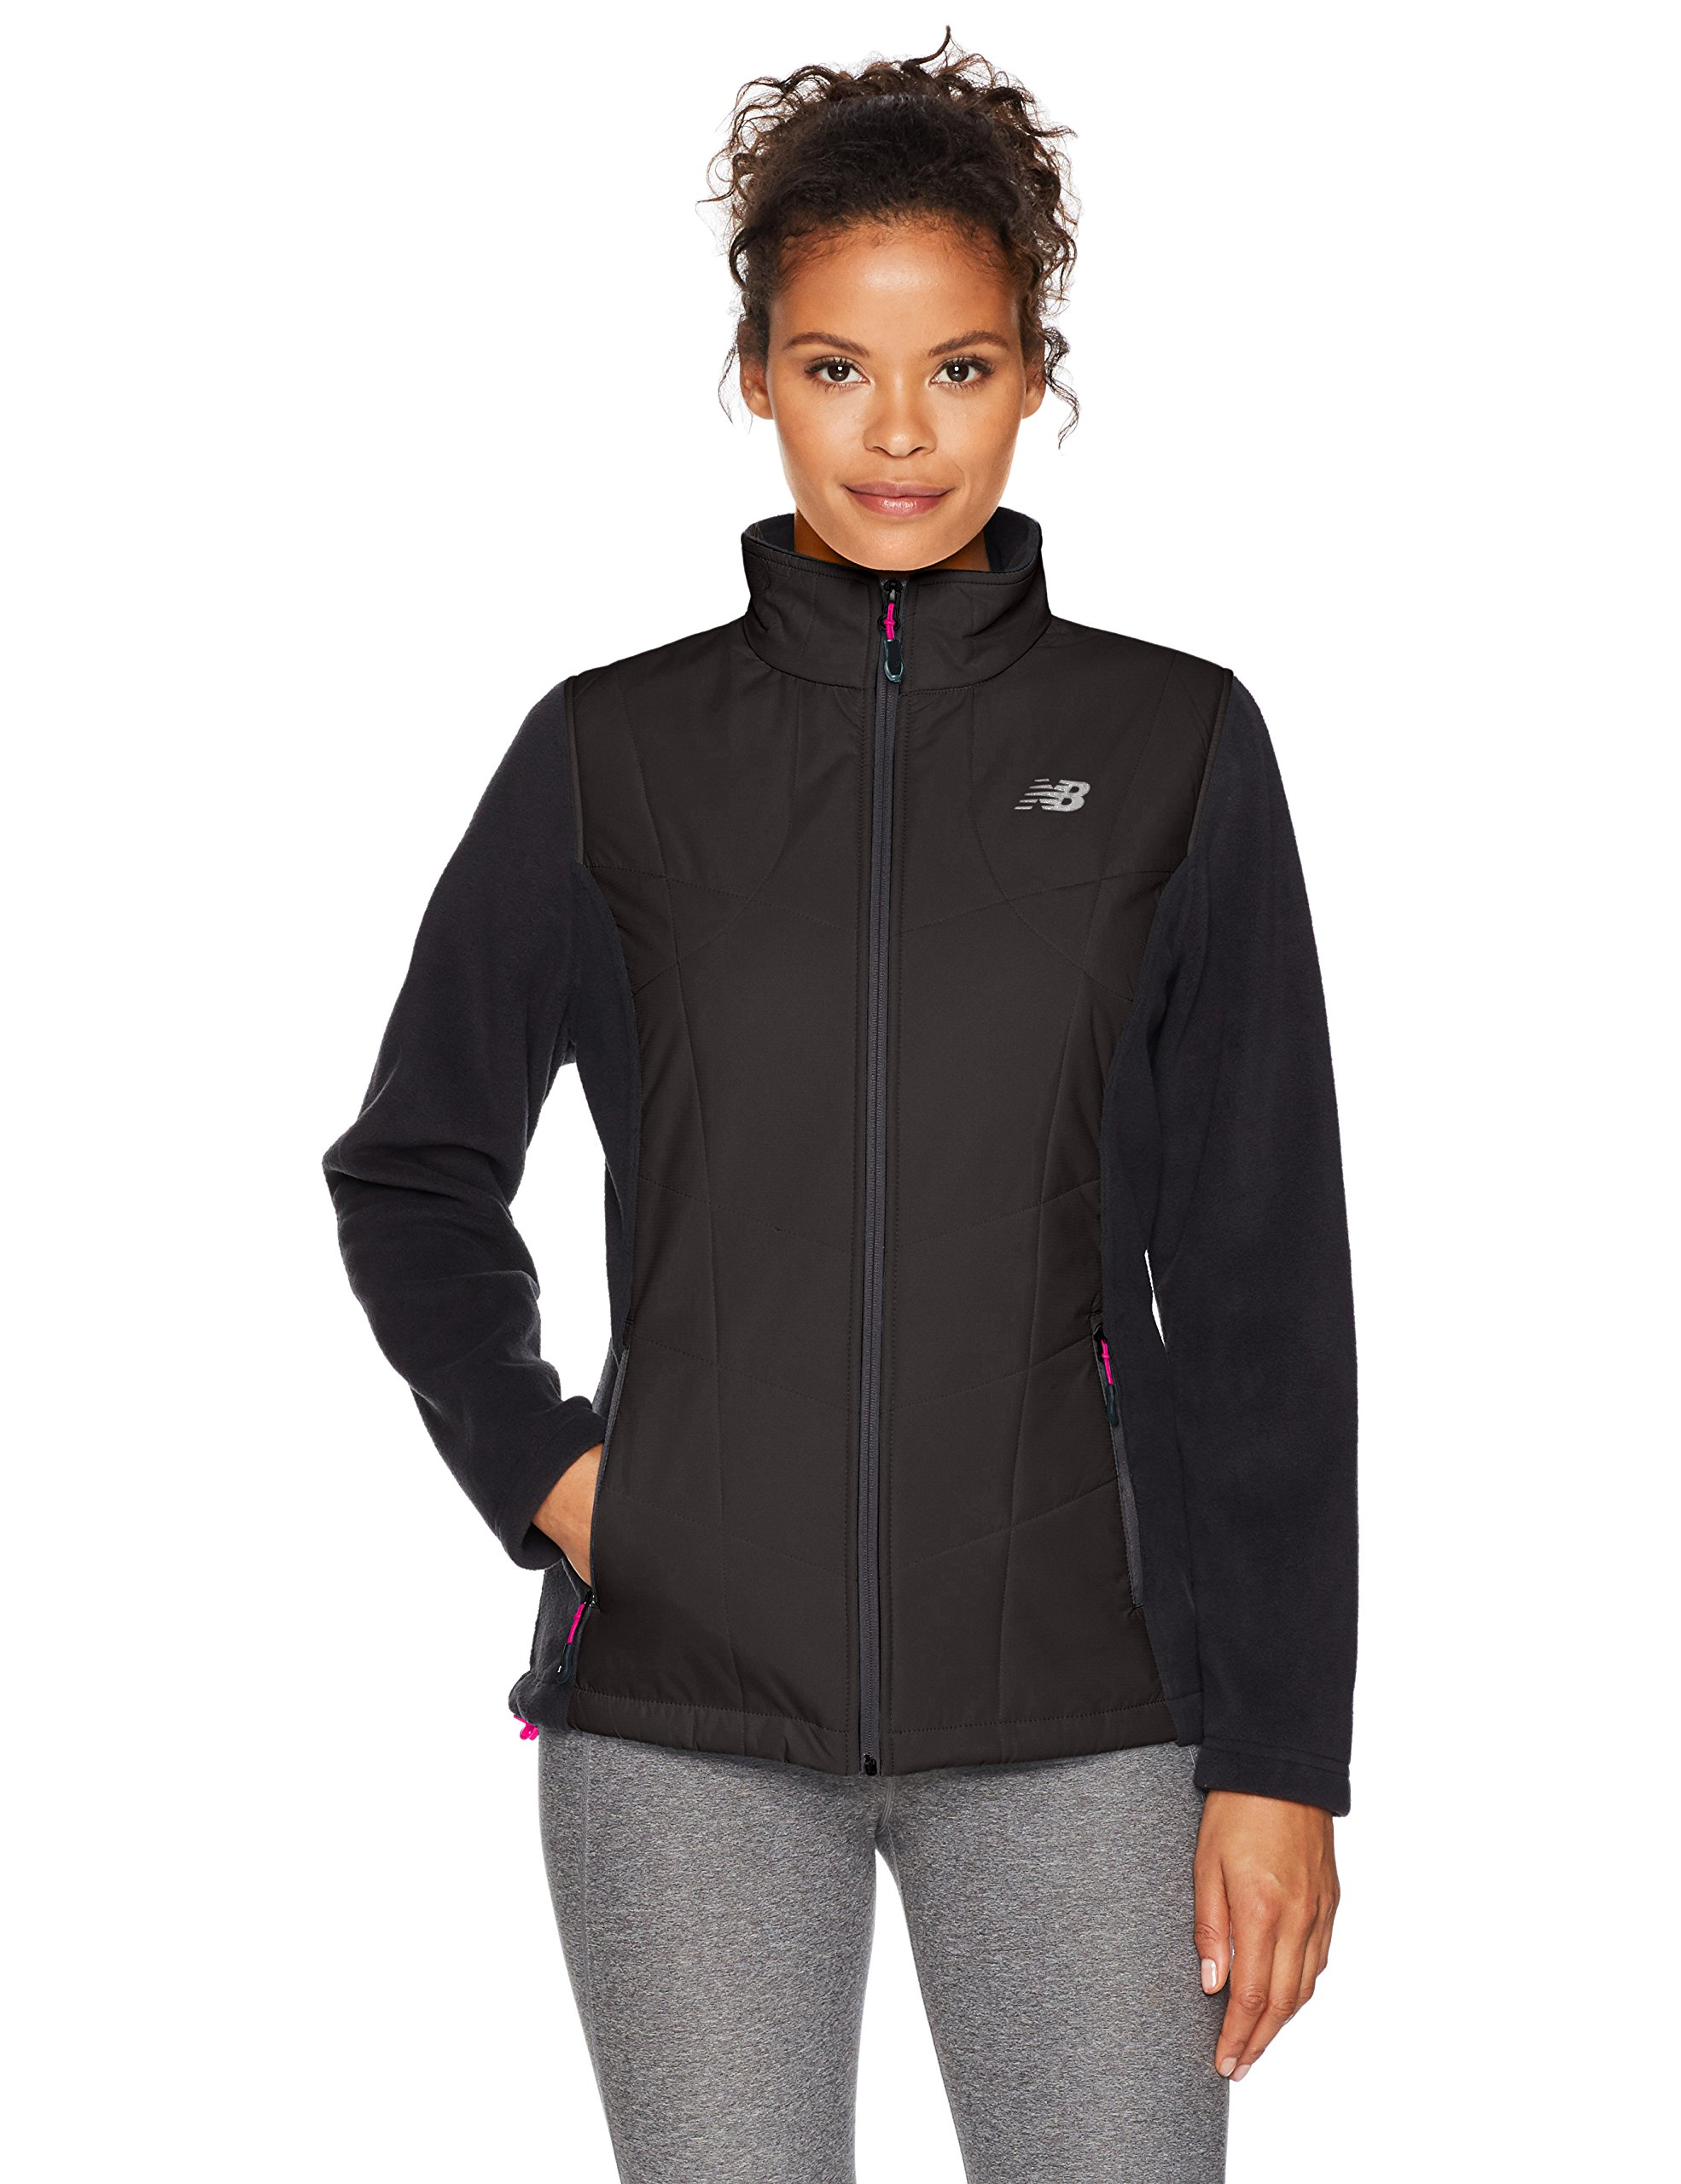 New Balance - Outdoors Fleece Mock Neck with Overlay Outerwear, Black/Black, X-Large